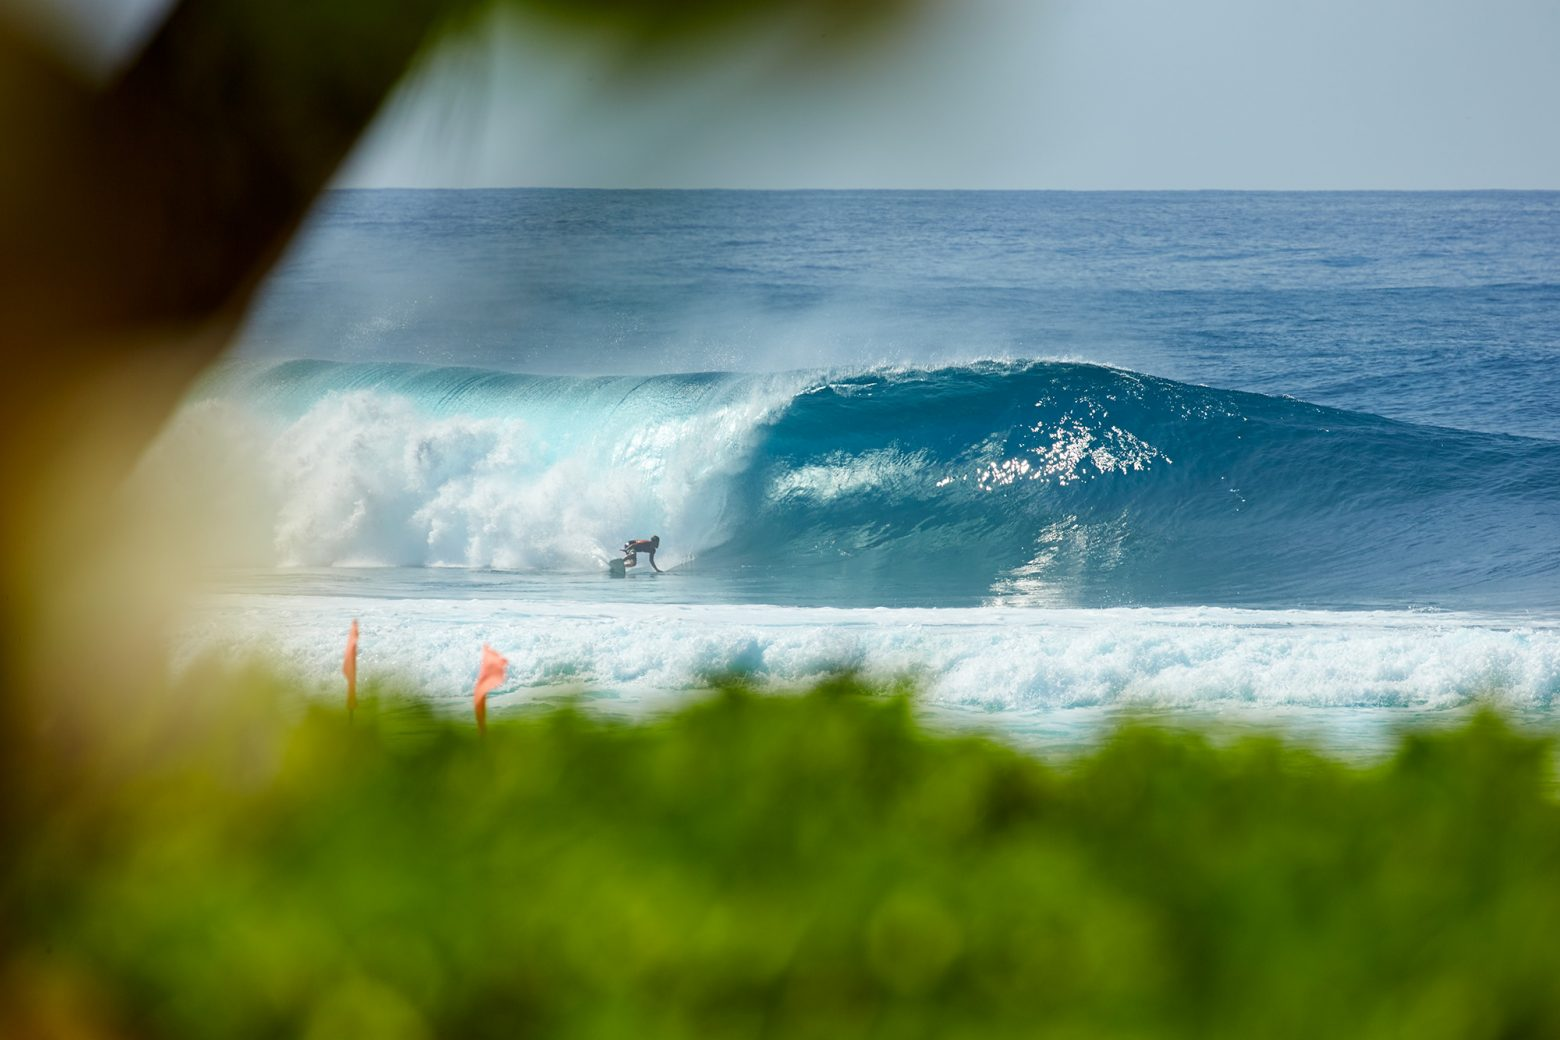 Pipeline, hope it's this good for the comp